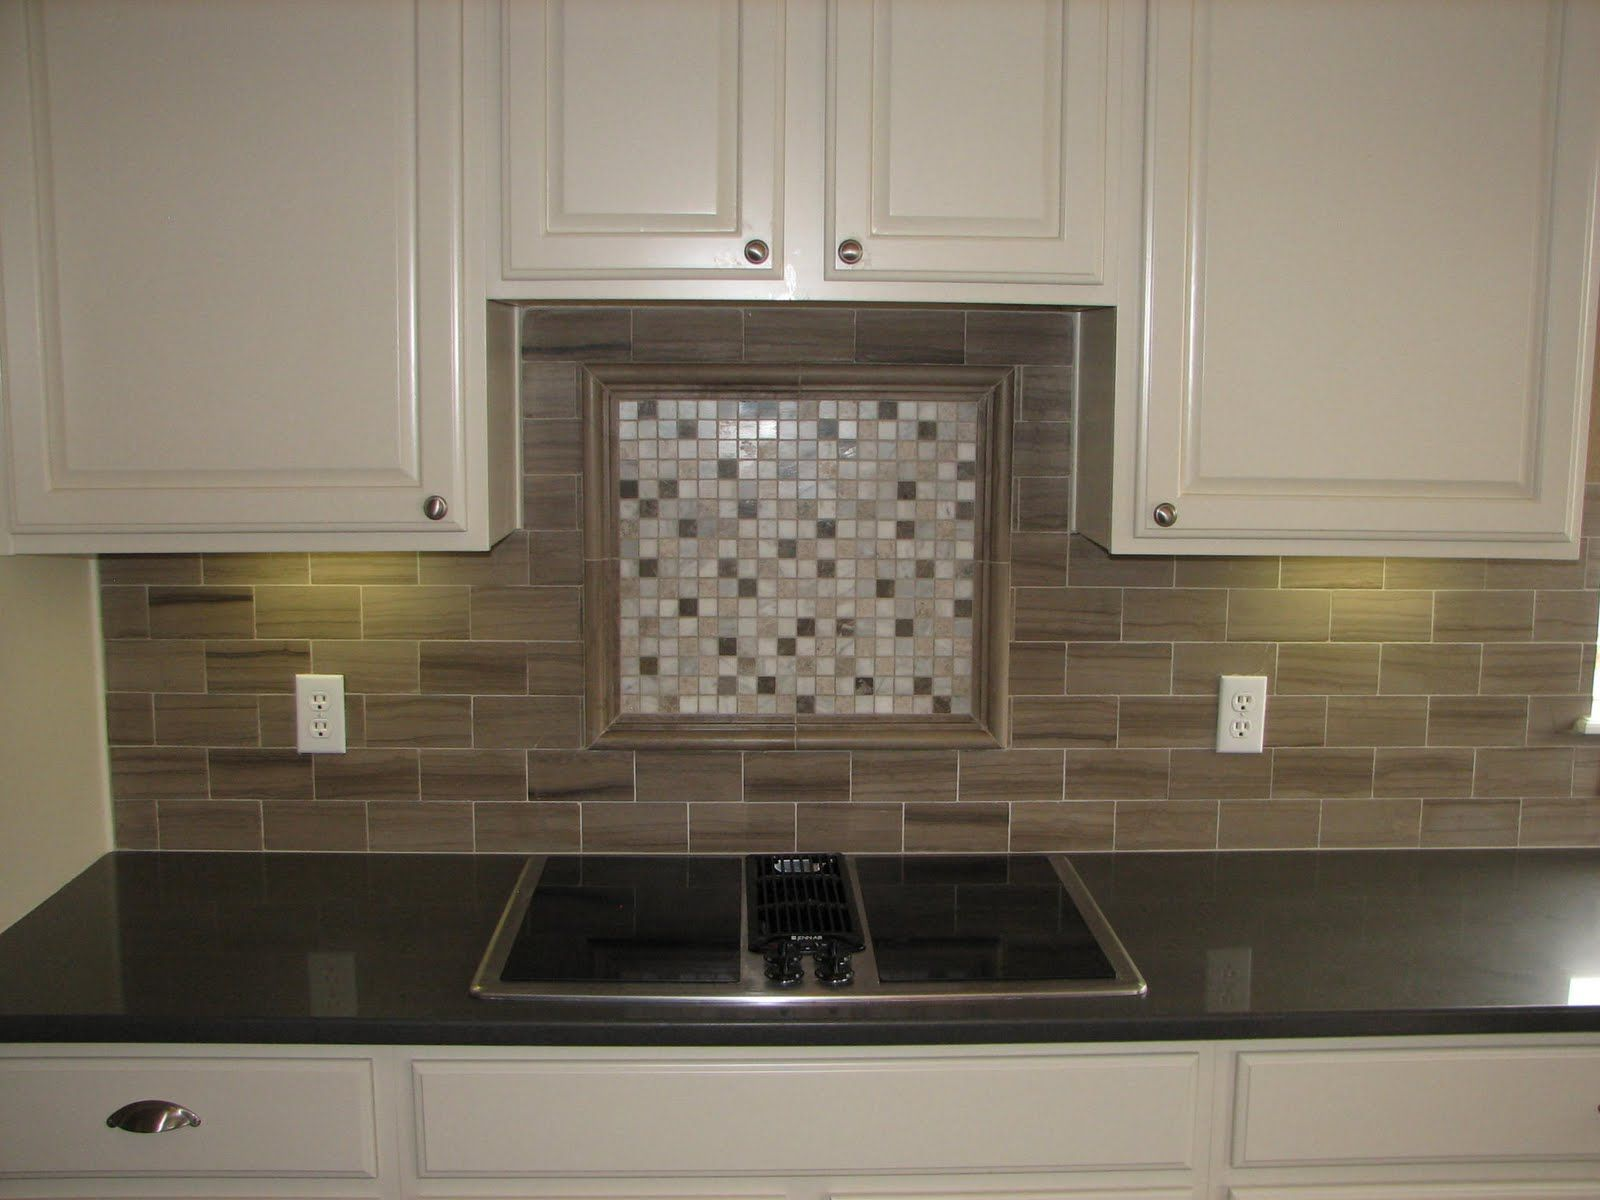 Tile backsplash with black cuntertop ideas tile Backsplash photos kitchen ideas